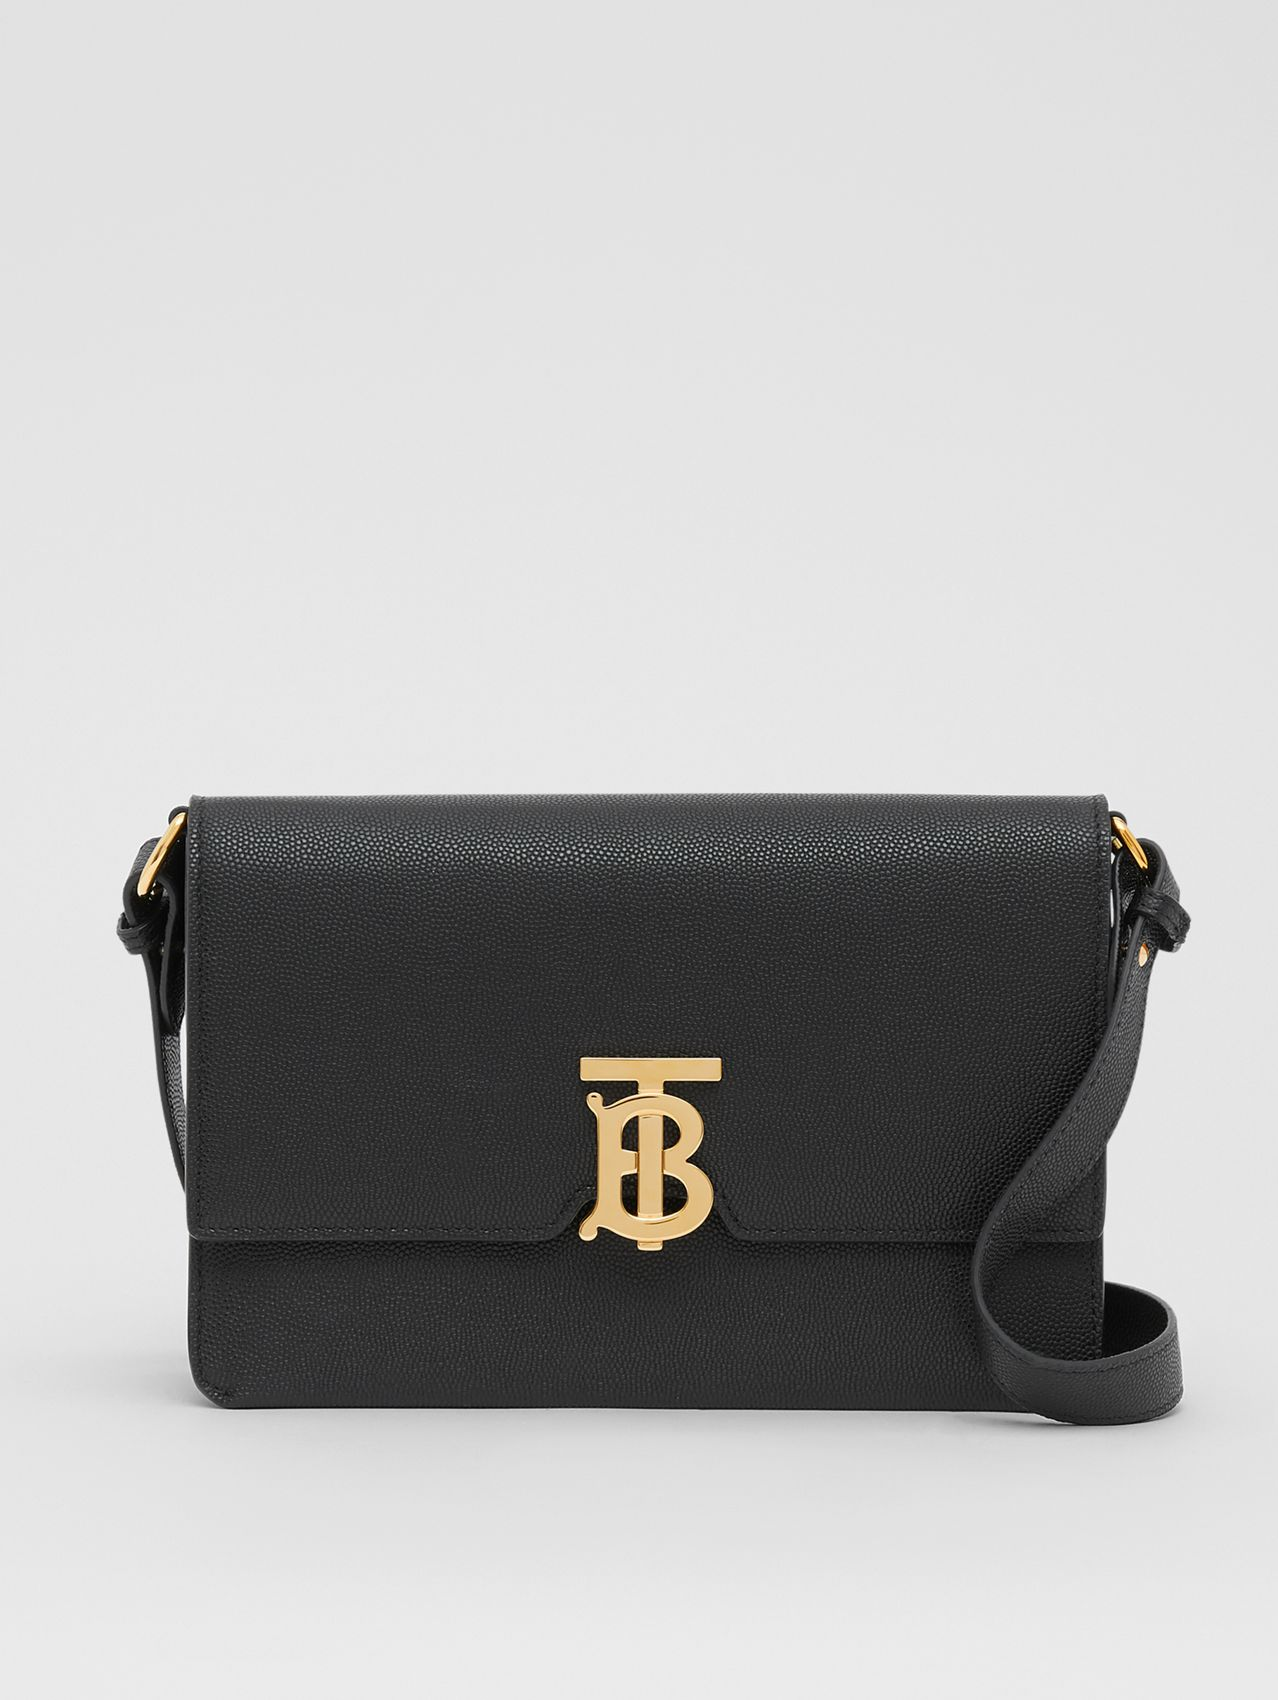 Small Monogram Motif Leather Crossbody Bag in Black